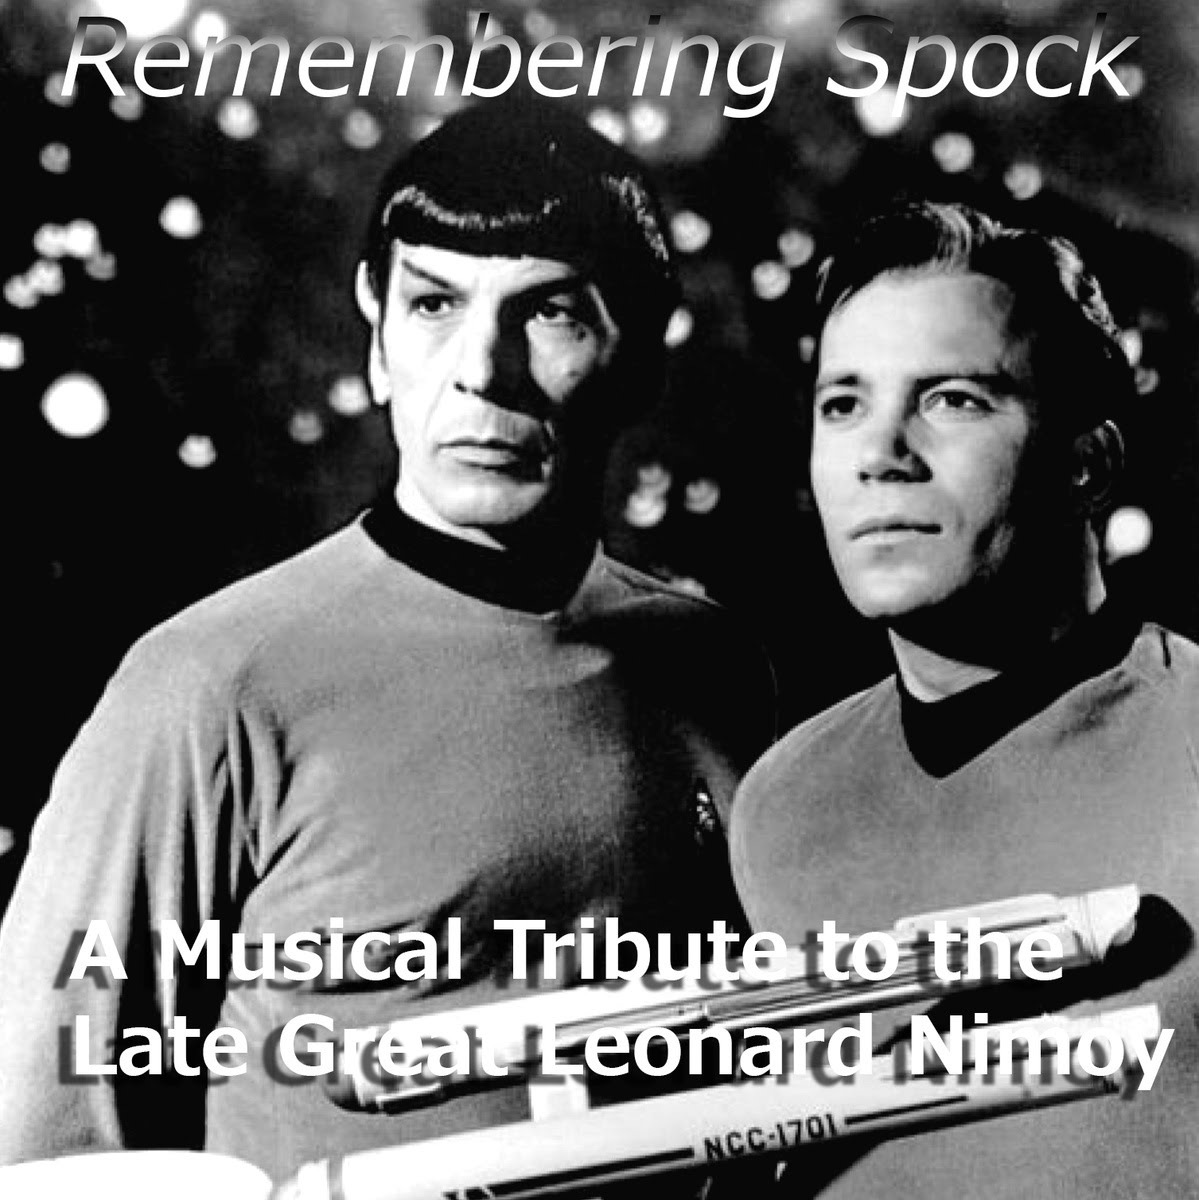 https://bordersedge.bandcamp.com/album/remembering-spock